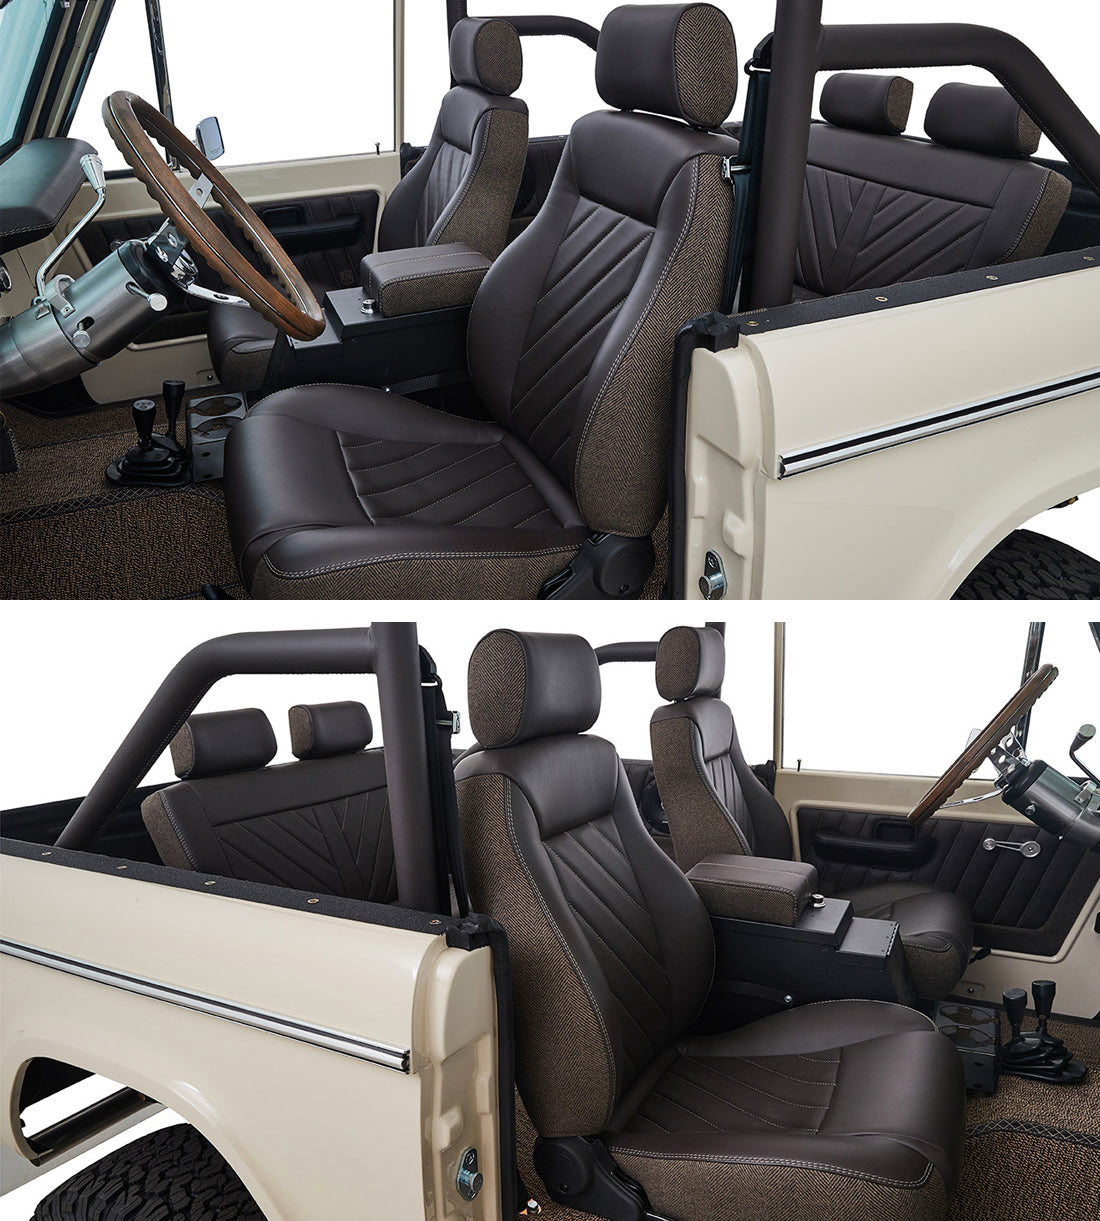 Classic Ford Broncos with Relicate Leather Interior Seats